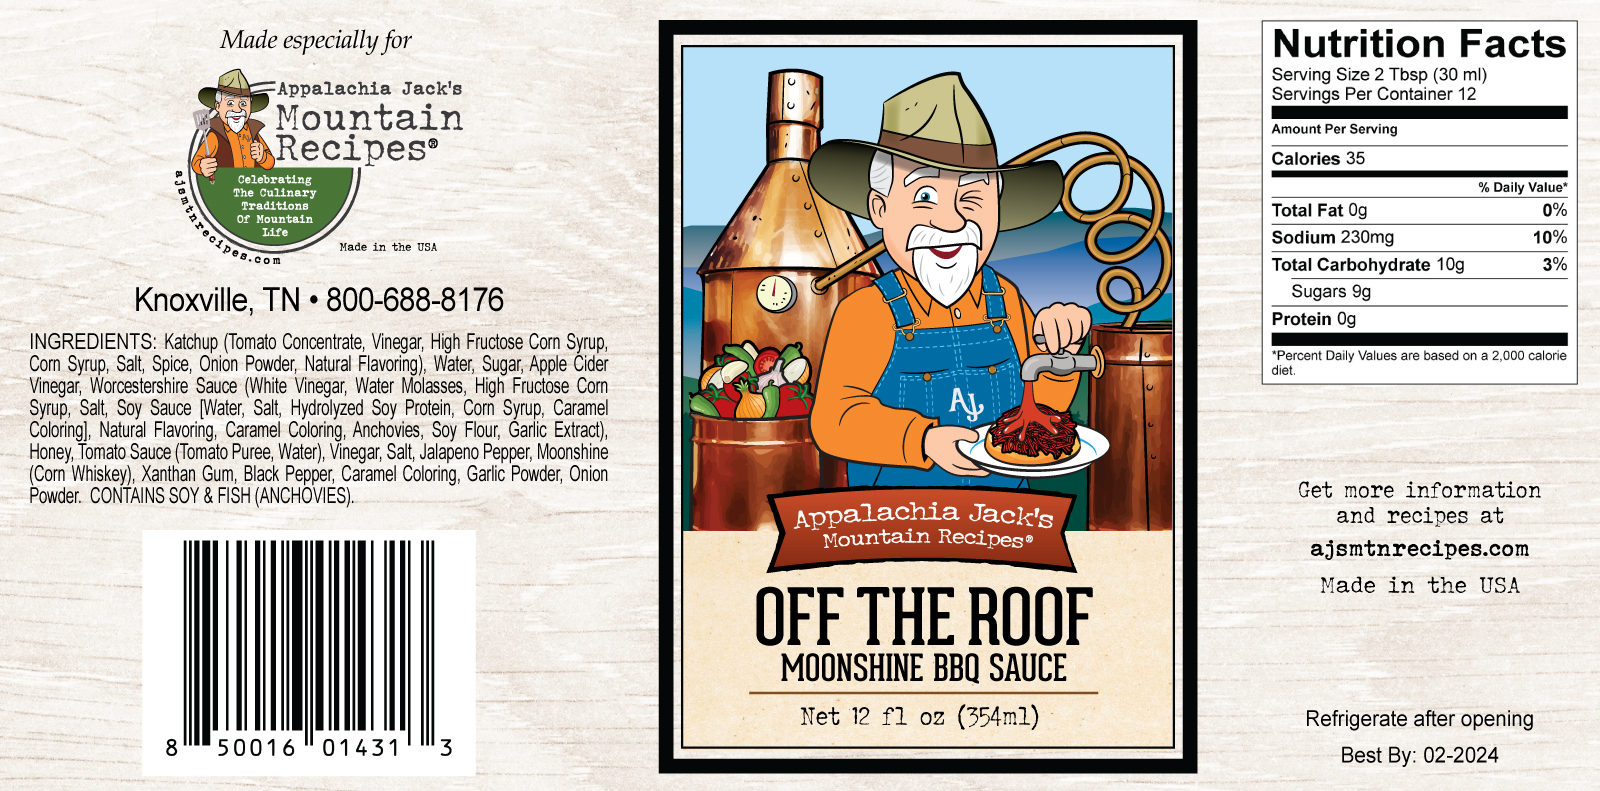 Off The Roof Moonshine BBQ Sauce